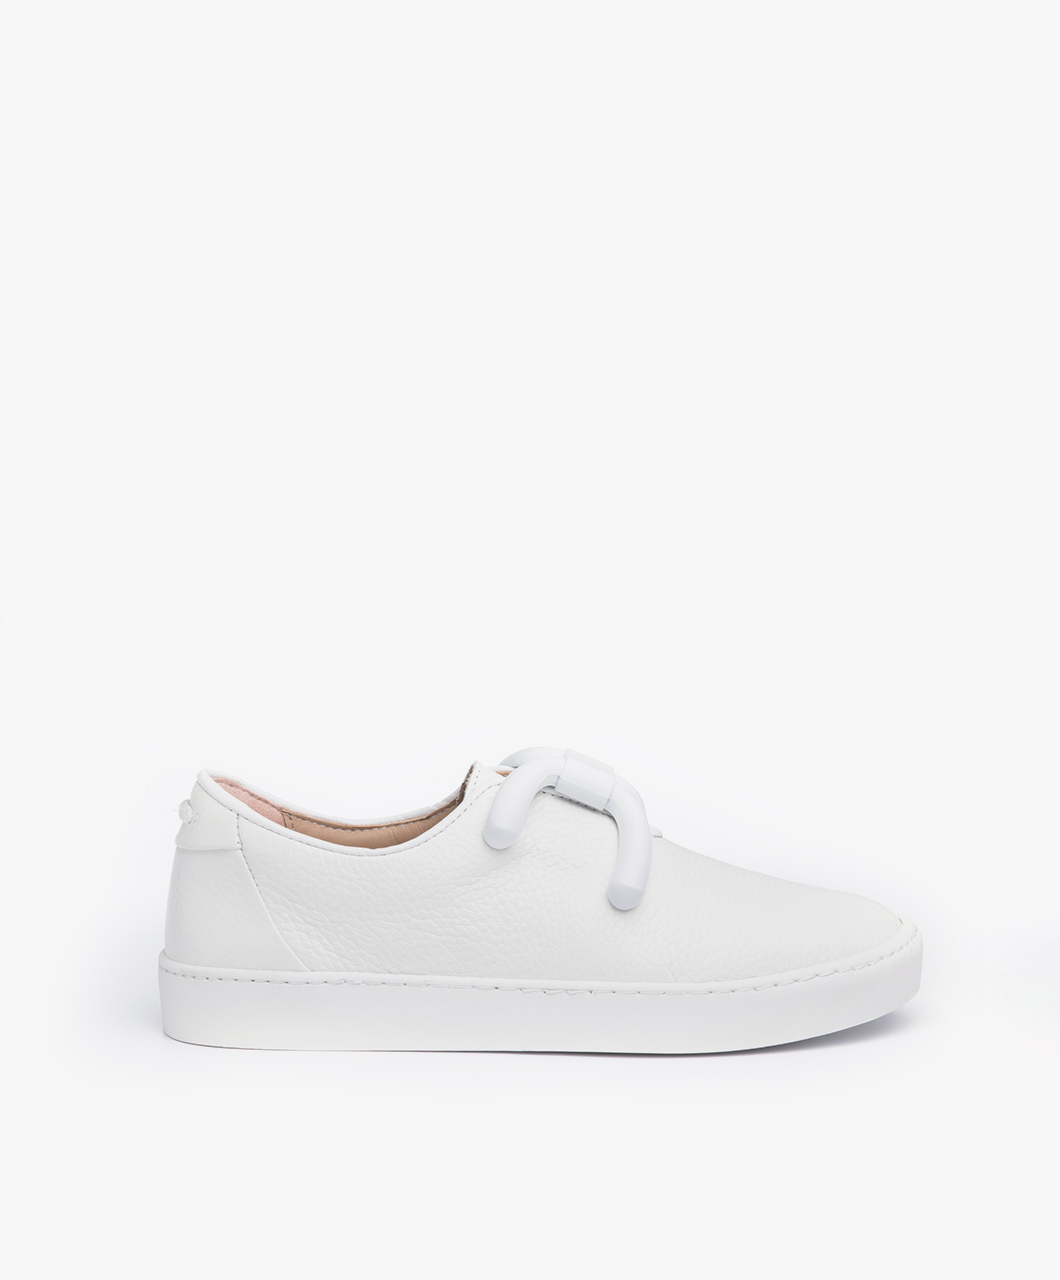 Immagine di An Hour And A Shower Sneakers Livia Low in White Leather